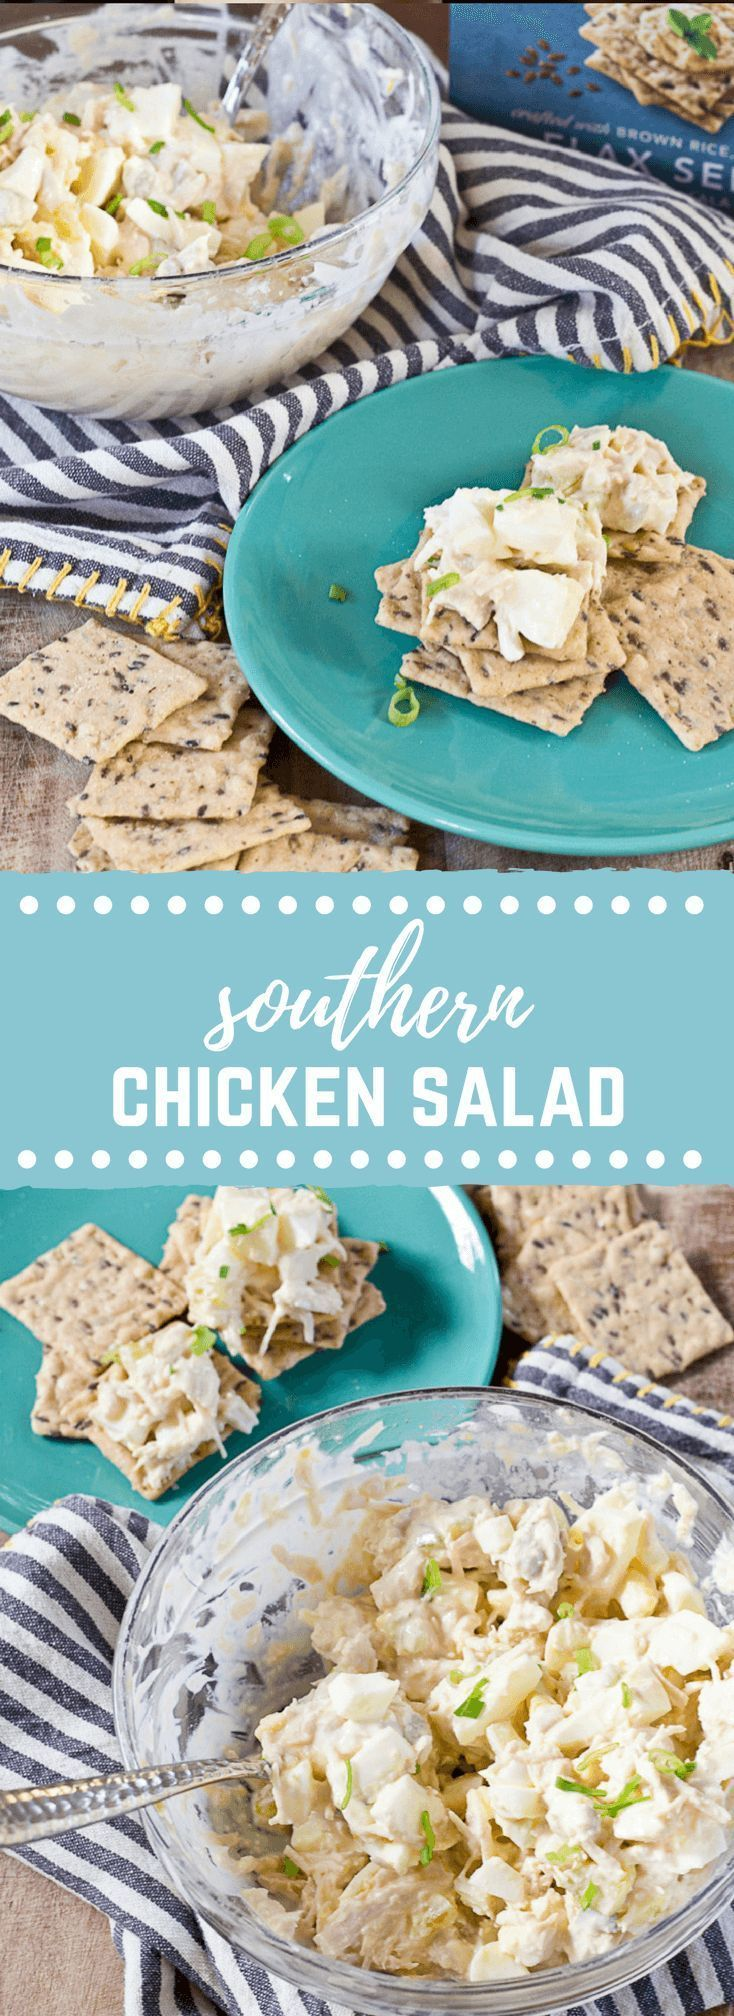 Southern Canned Chicken Salad Recipe Canned Chicken Recipes Recipe Canned Chicken Salad Recipe Easy Chicken Salad Chicken Salad Recipe Easy